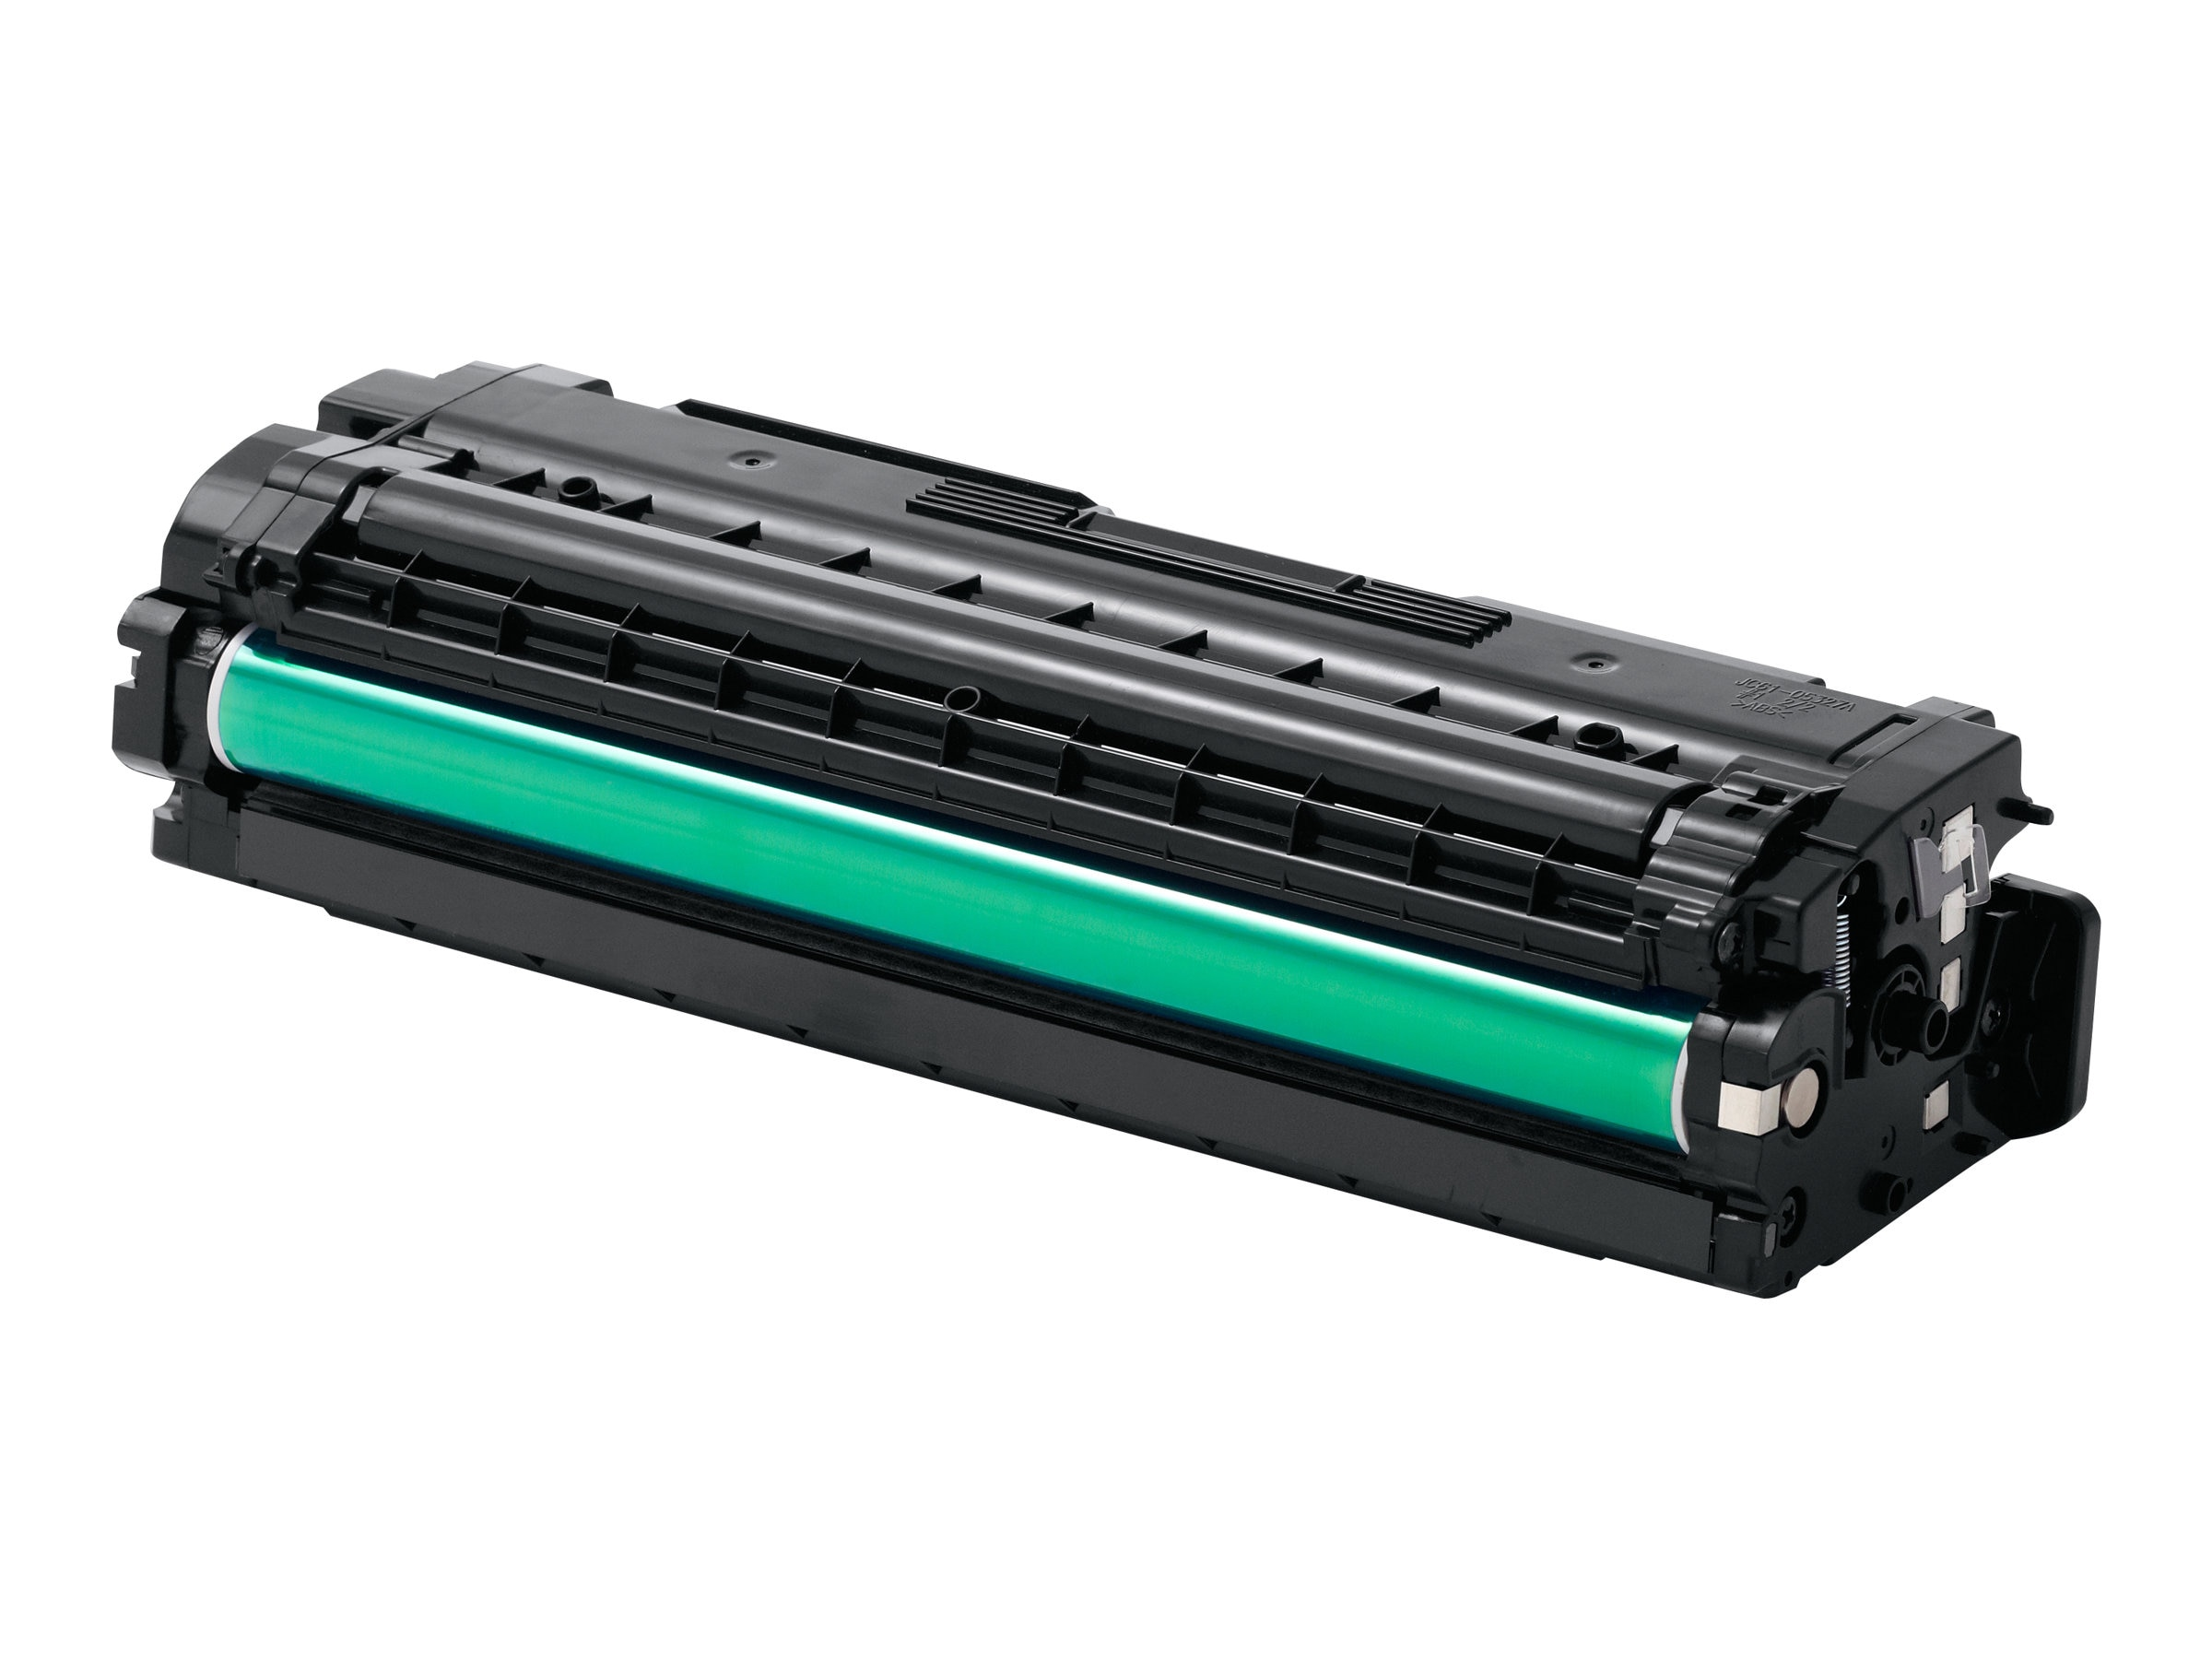 Samsung Magenta Toner Cartridge for CLP-680ND Color Laser Printer & CLX-6260FW & CLX-6260FD Color MFPs, CLT-M506S